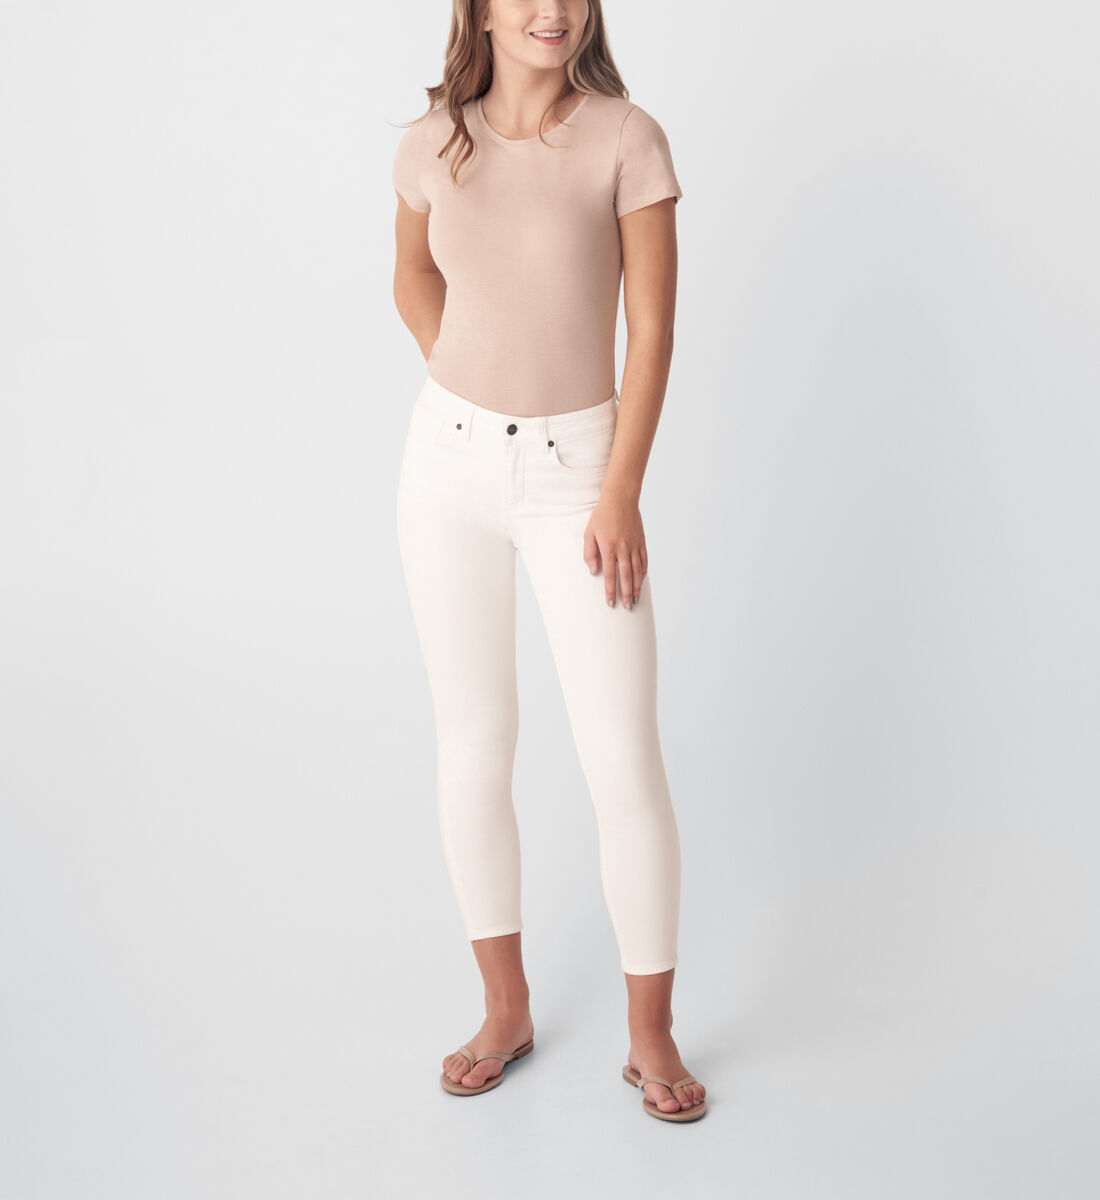 Most Wanted Mid Rise Skinny Jeans,White Front